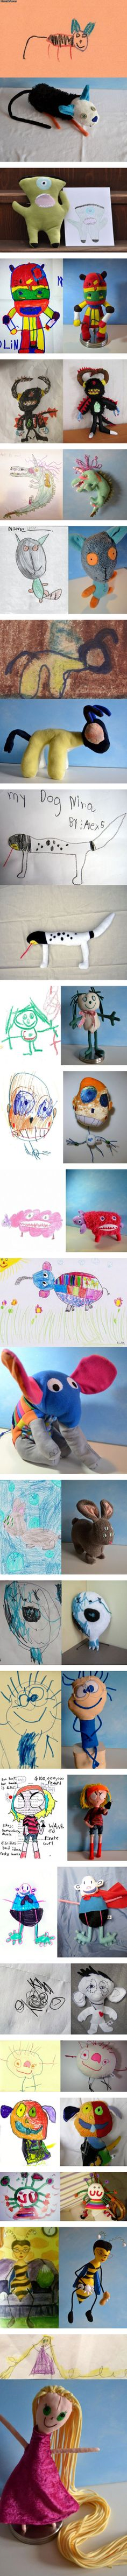 cute idea.... I love it!  It kids drawings were made into toys...